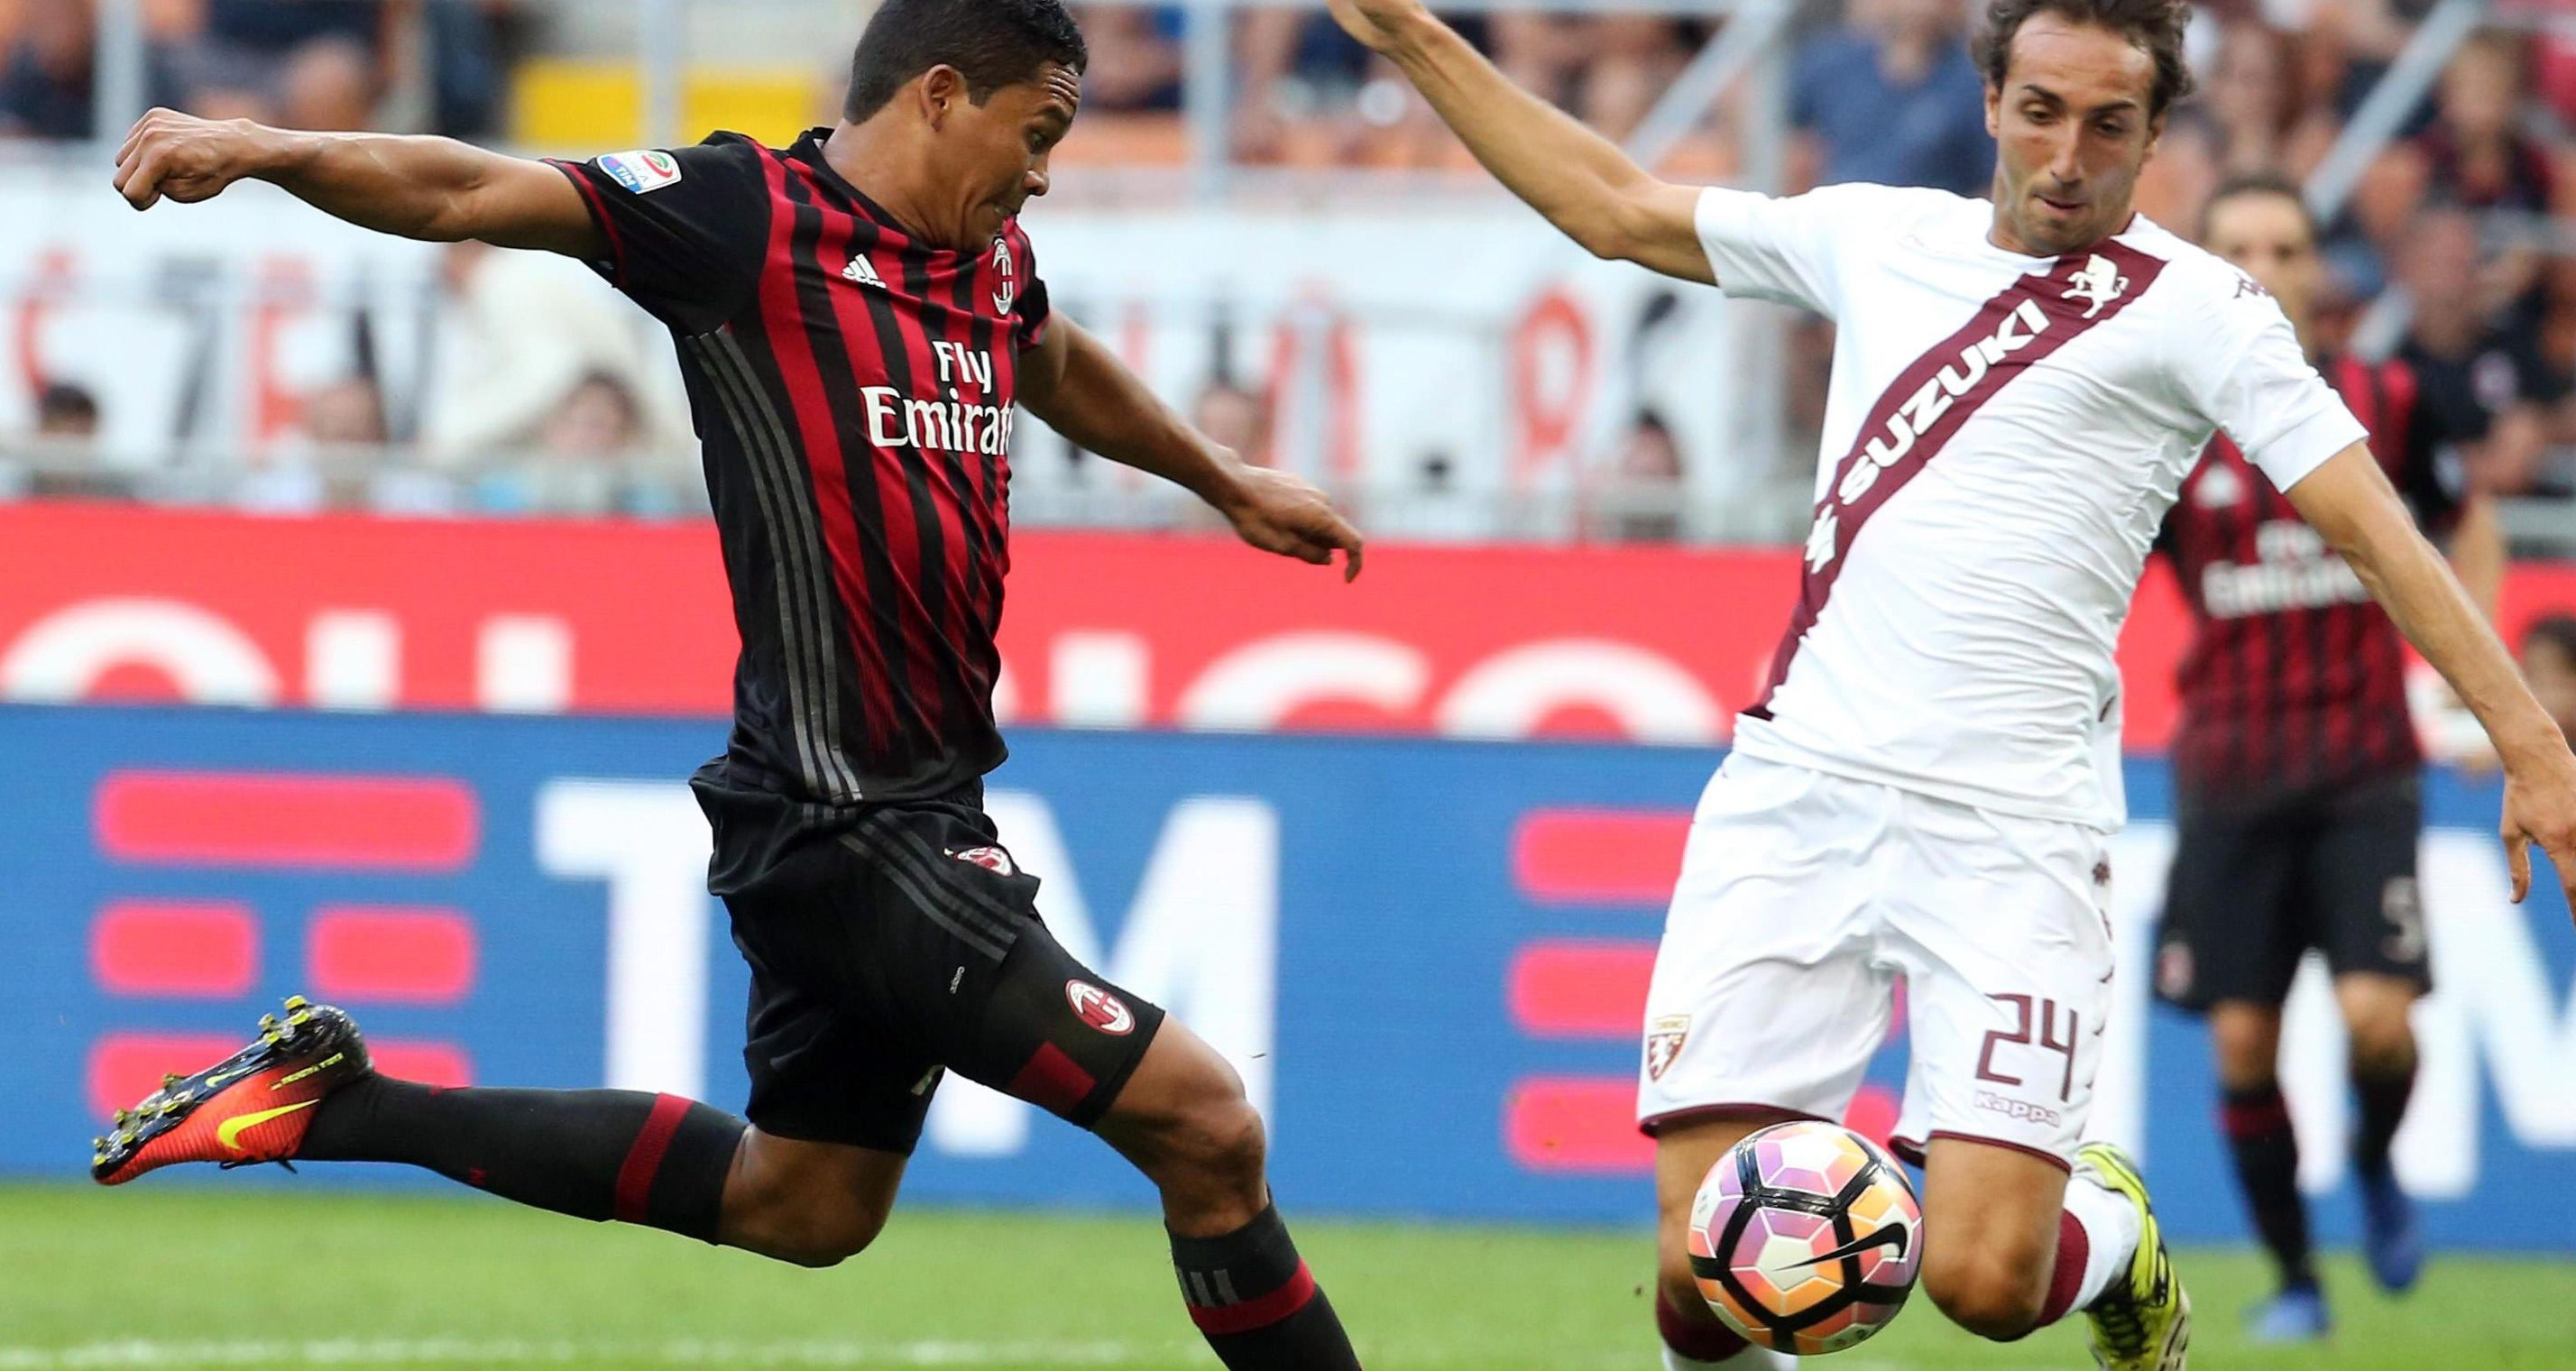 . Milan (Italy), 21/08/2016.- Milan's Carlos Bacca (L) scores the goal during the Italian Serie A soccer match AC Milan vs Torino FC at Giuseppe Meazza stadium in Milan, Italy, 21 August 2016. (Italia) EFE/EPA/MATTEO BAZZI